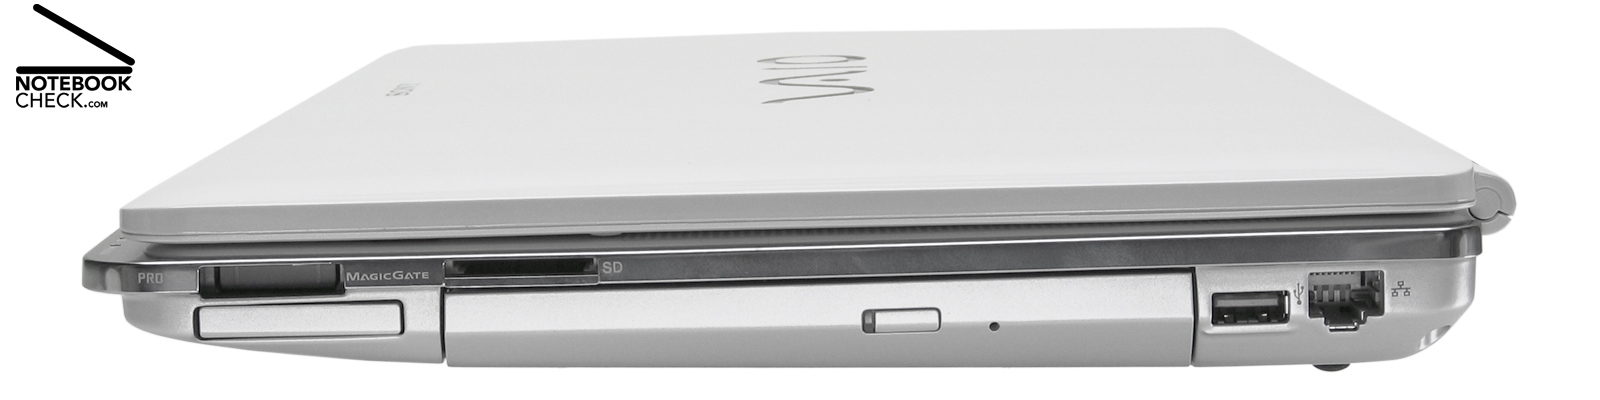 SONY VAIO VGN-CR31S DOWNLOAD DRIVER